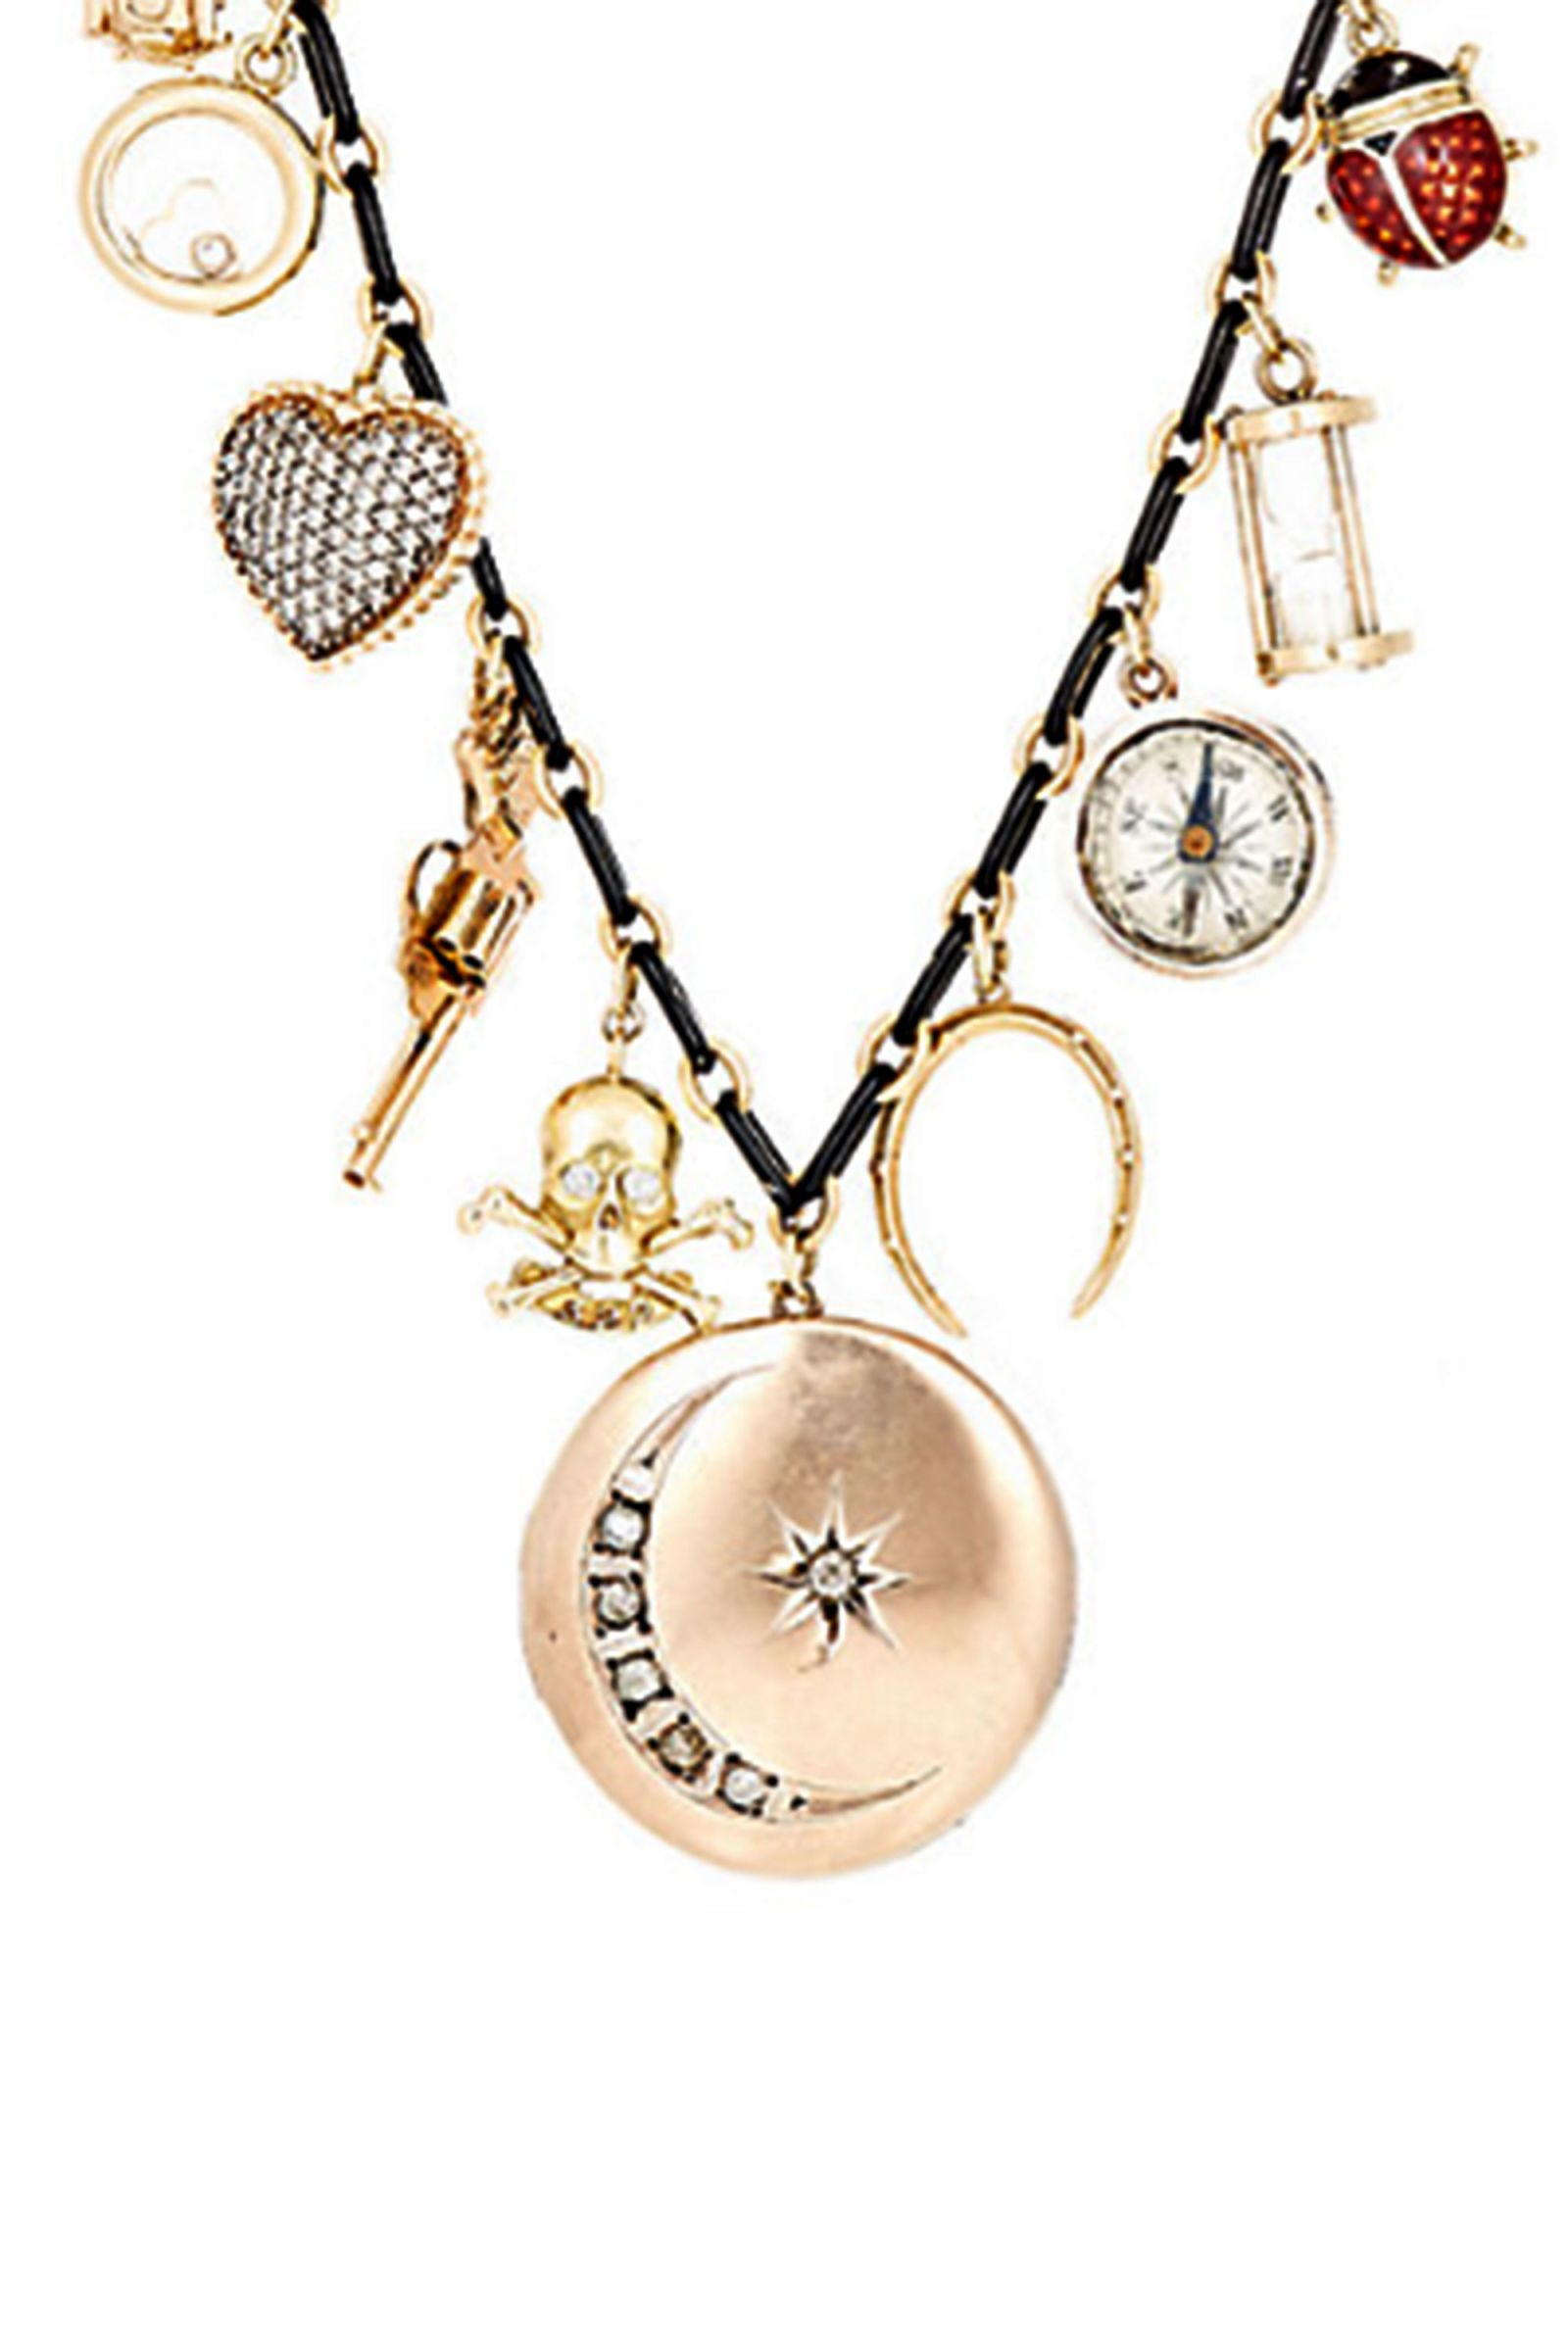 10 Fancy Lockets To Hold The Photos You Heart Letter Charm Necklace Charm Necklace Locket Charm Necklace